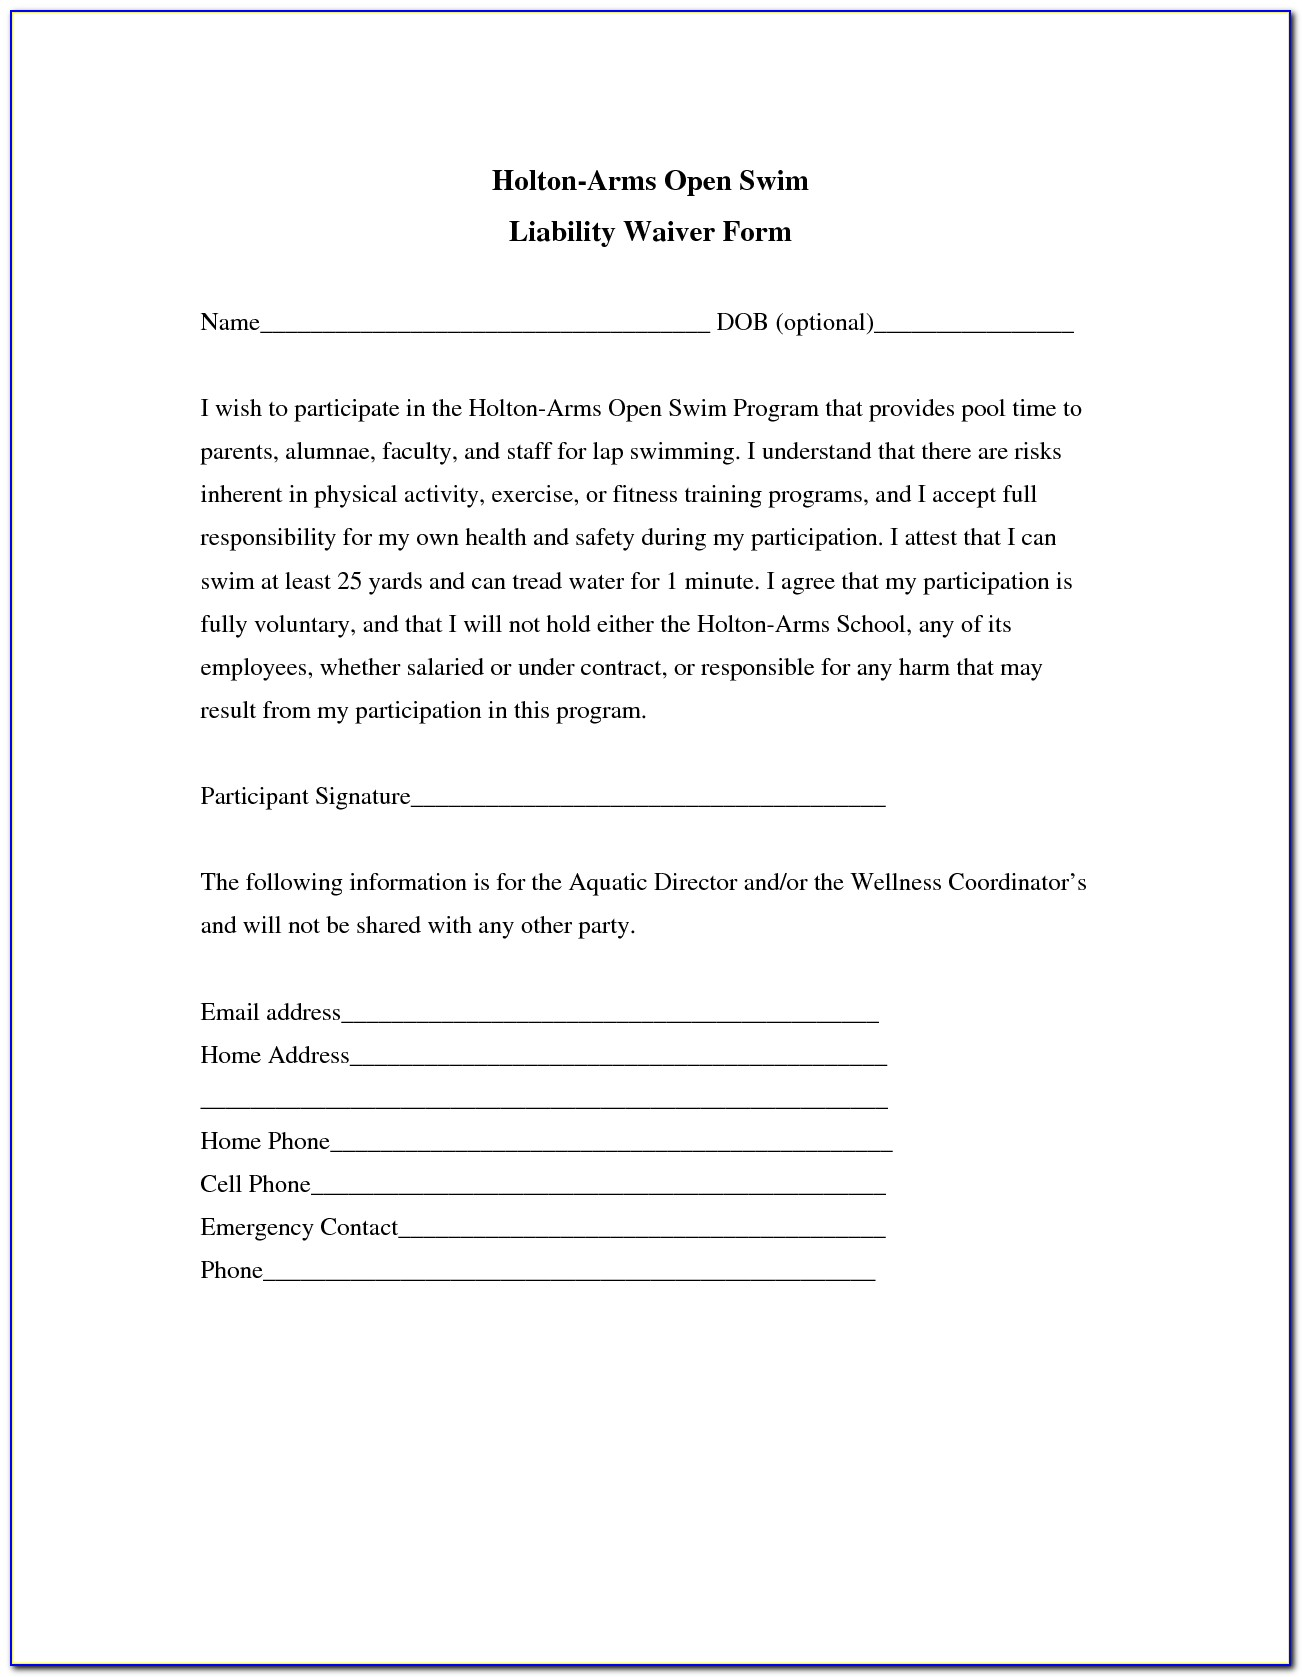 Insurance Waiver Form For Contractors